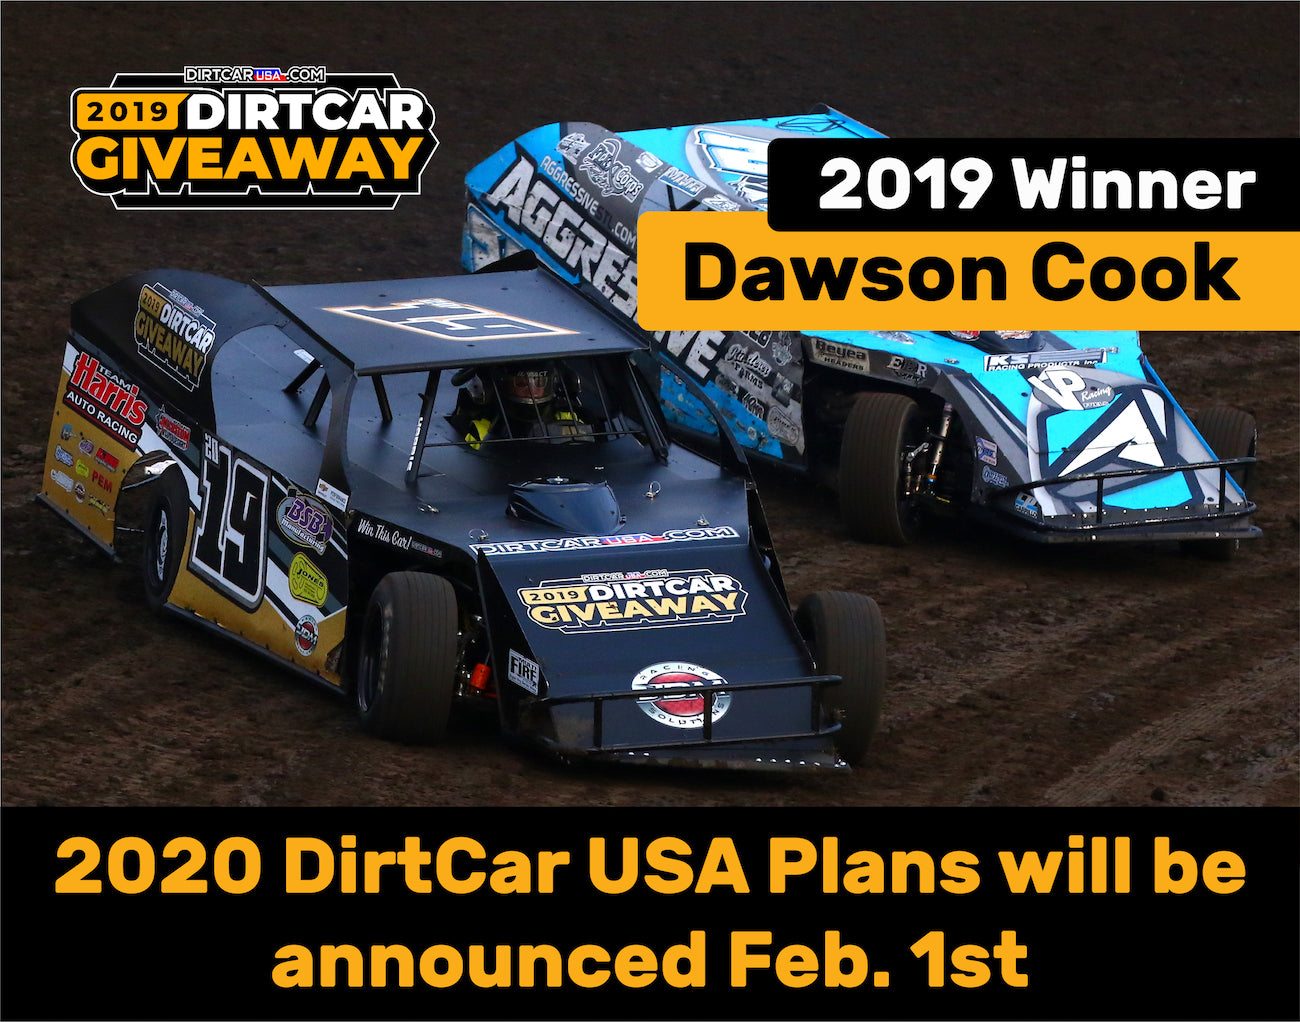 DIRTCAR USA